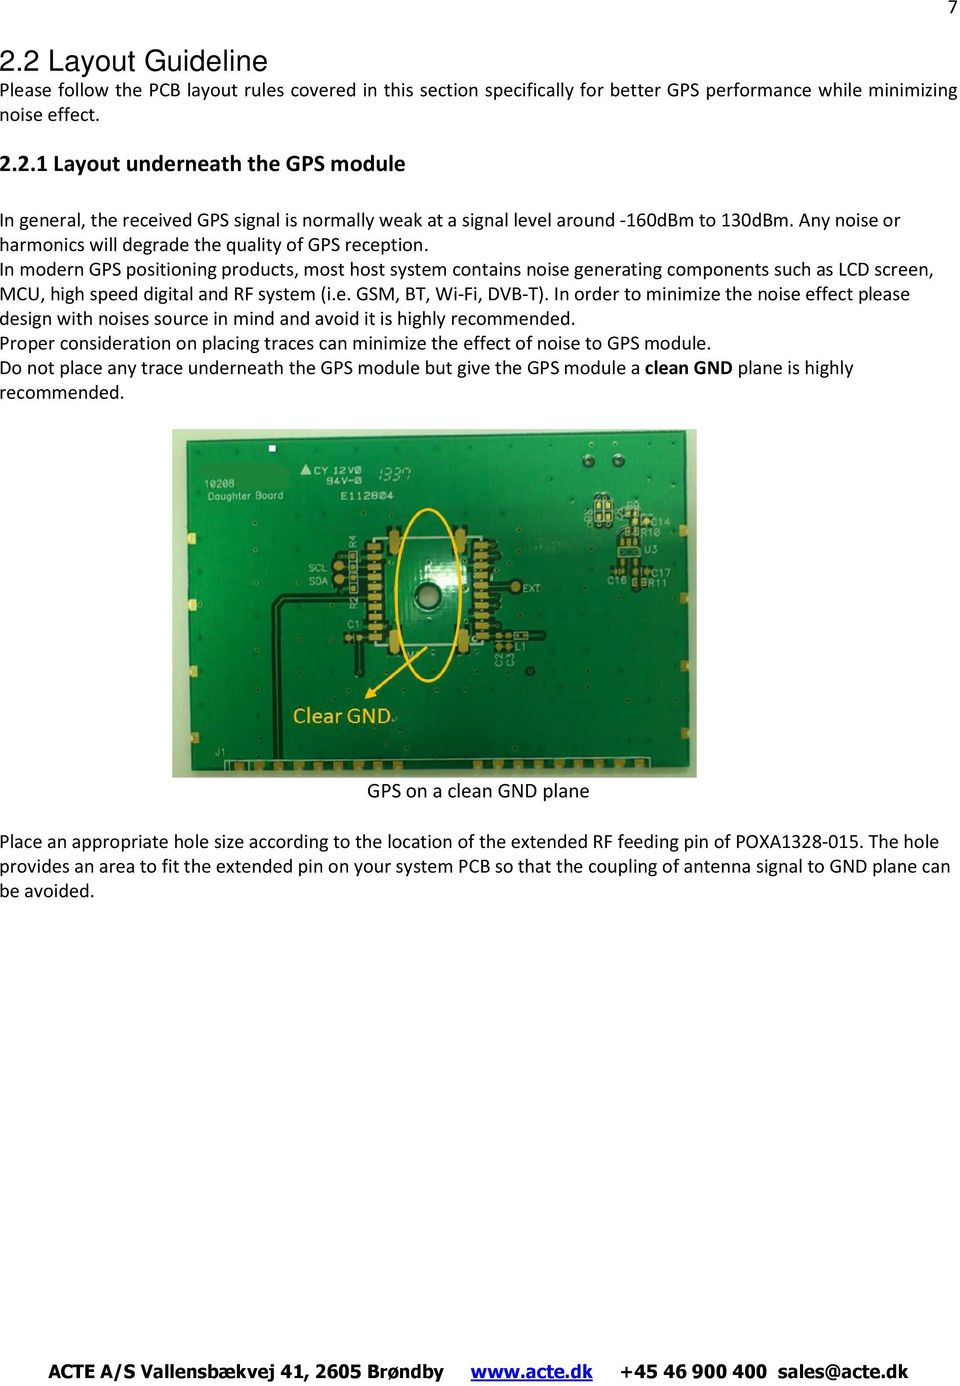 Gps Module Application Notes Ubx G7020 Series Pdf Pcba Pcb Assembly Circuit Board In Modern Positioning Products Most Host System Contains Noise Generating Components Such As Lcd 8 Receiver